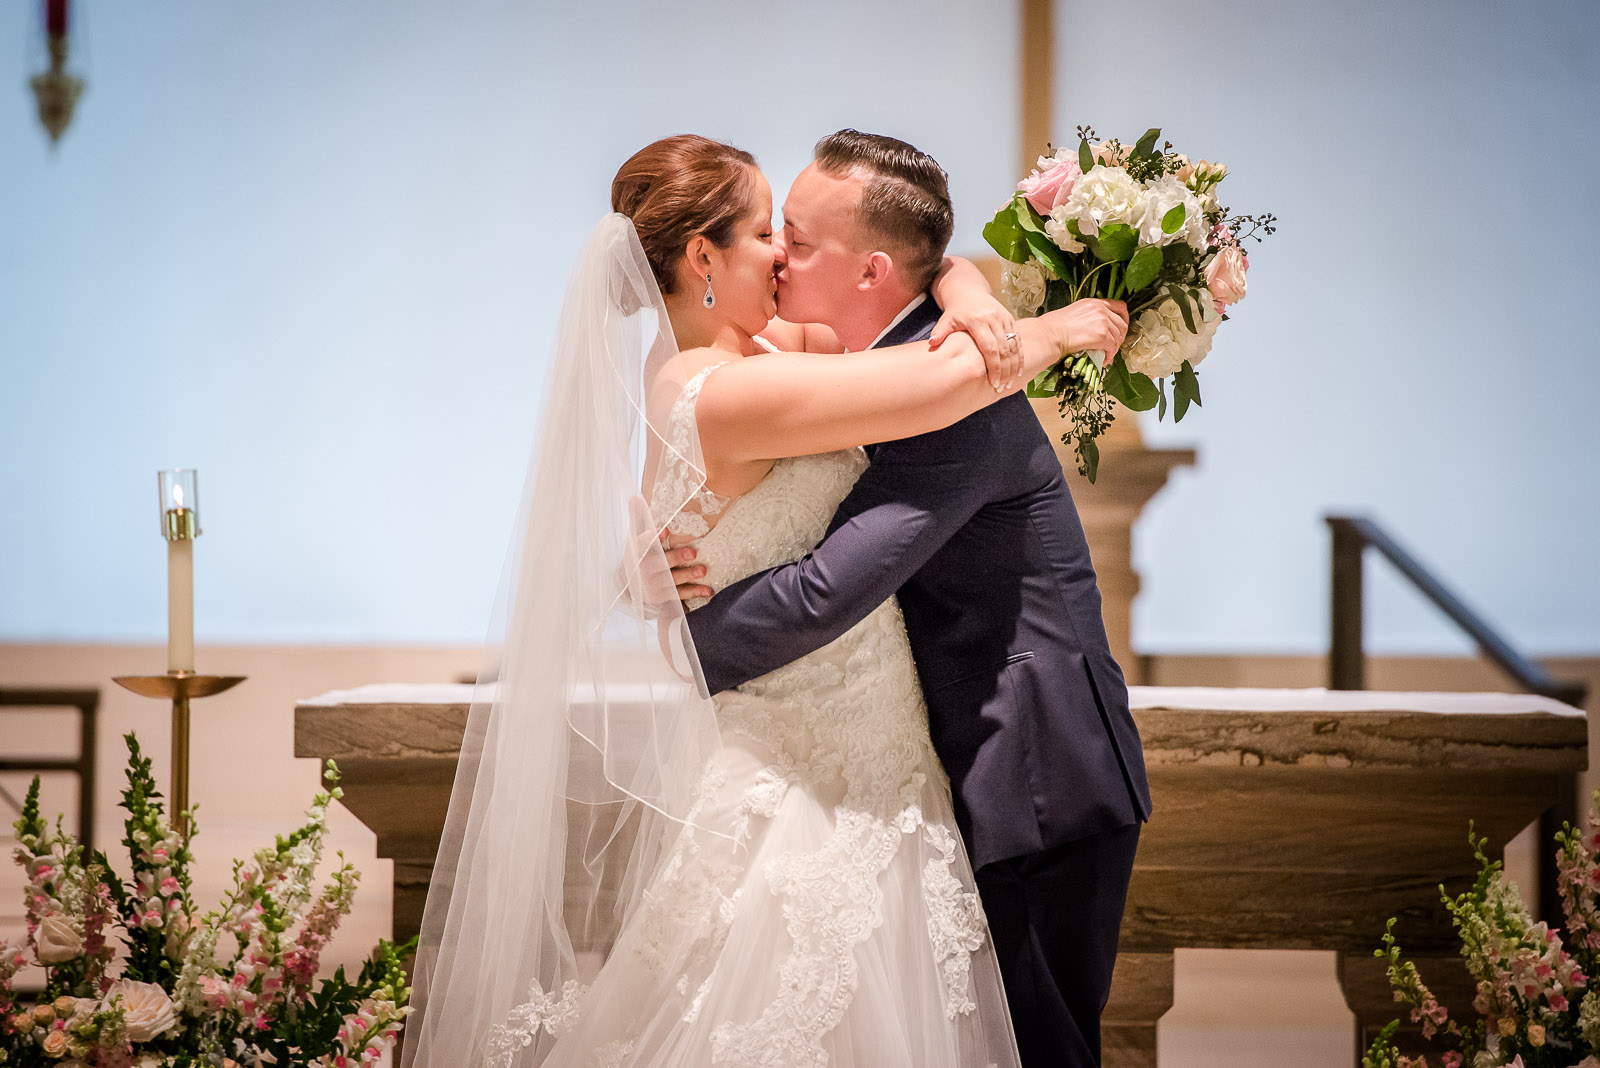 Eric_and_Christy_Photography_Blog_2018_Wed_moments-17